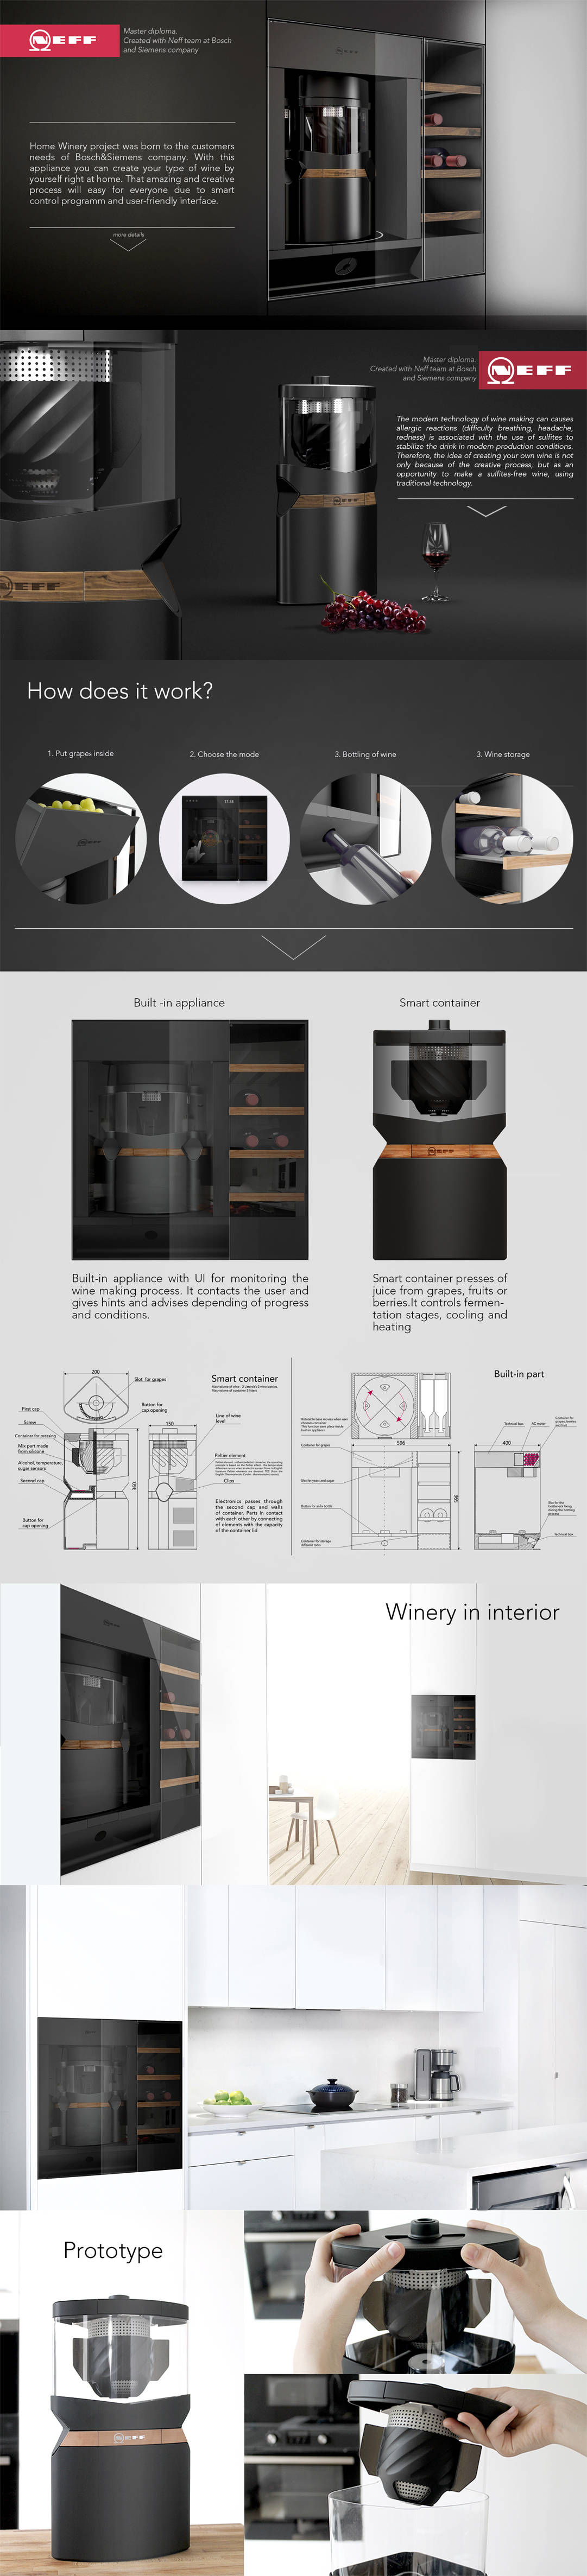 There is a master's diploma project created for Bosch Siemens company. The home winery is a built-in appliance for kitchen environment which help you to create your own wine at home. You can use as a fresh grapes, fruits and berryes as a sublimation product. It's easy and youll get a result wich you can proud. This design used a few new tecnologies, for example Peltier element as a cooling,